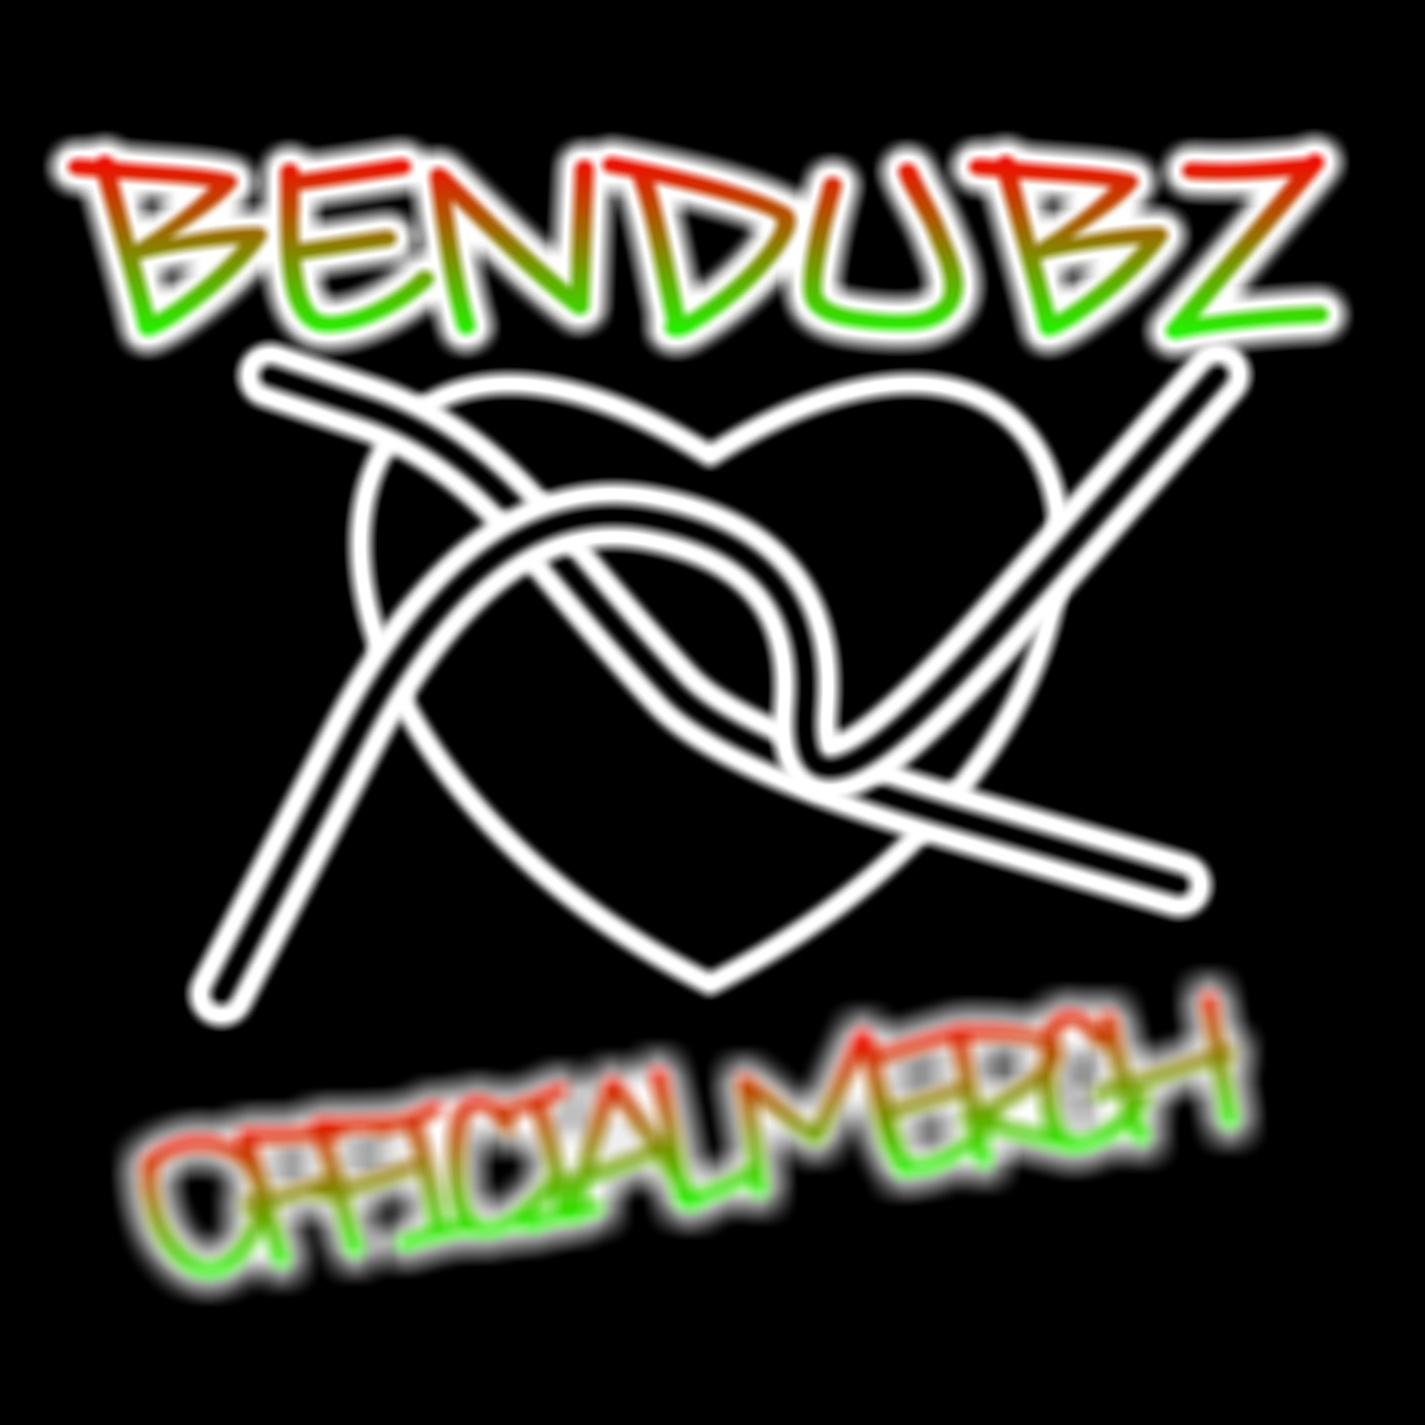 Bendubz Merch